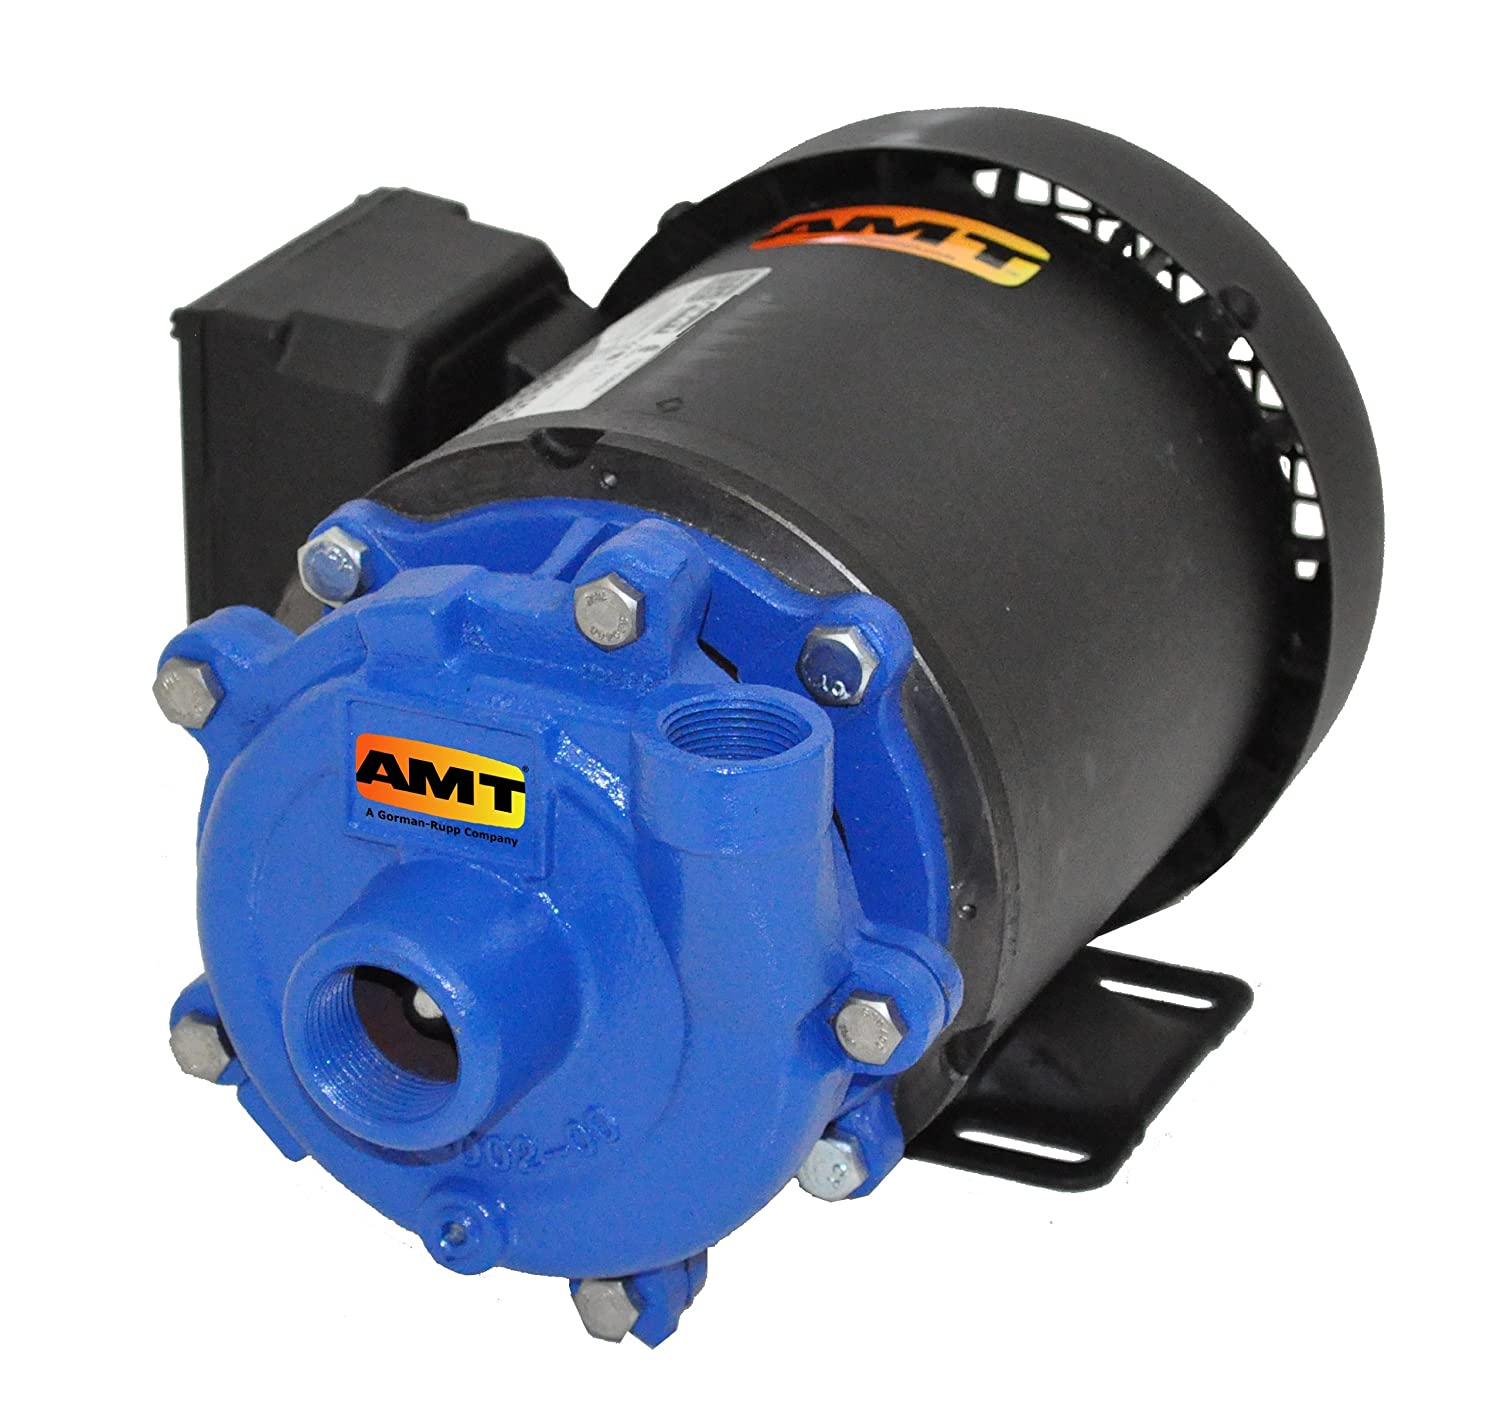 hot sale AMT Straight Centrifugal Pump, Cast Iron - tasklight ie